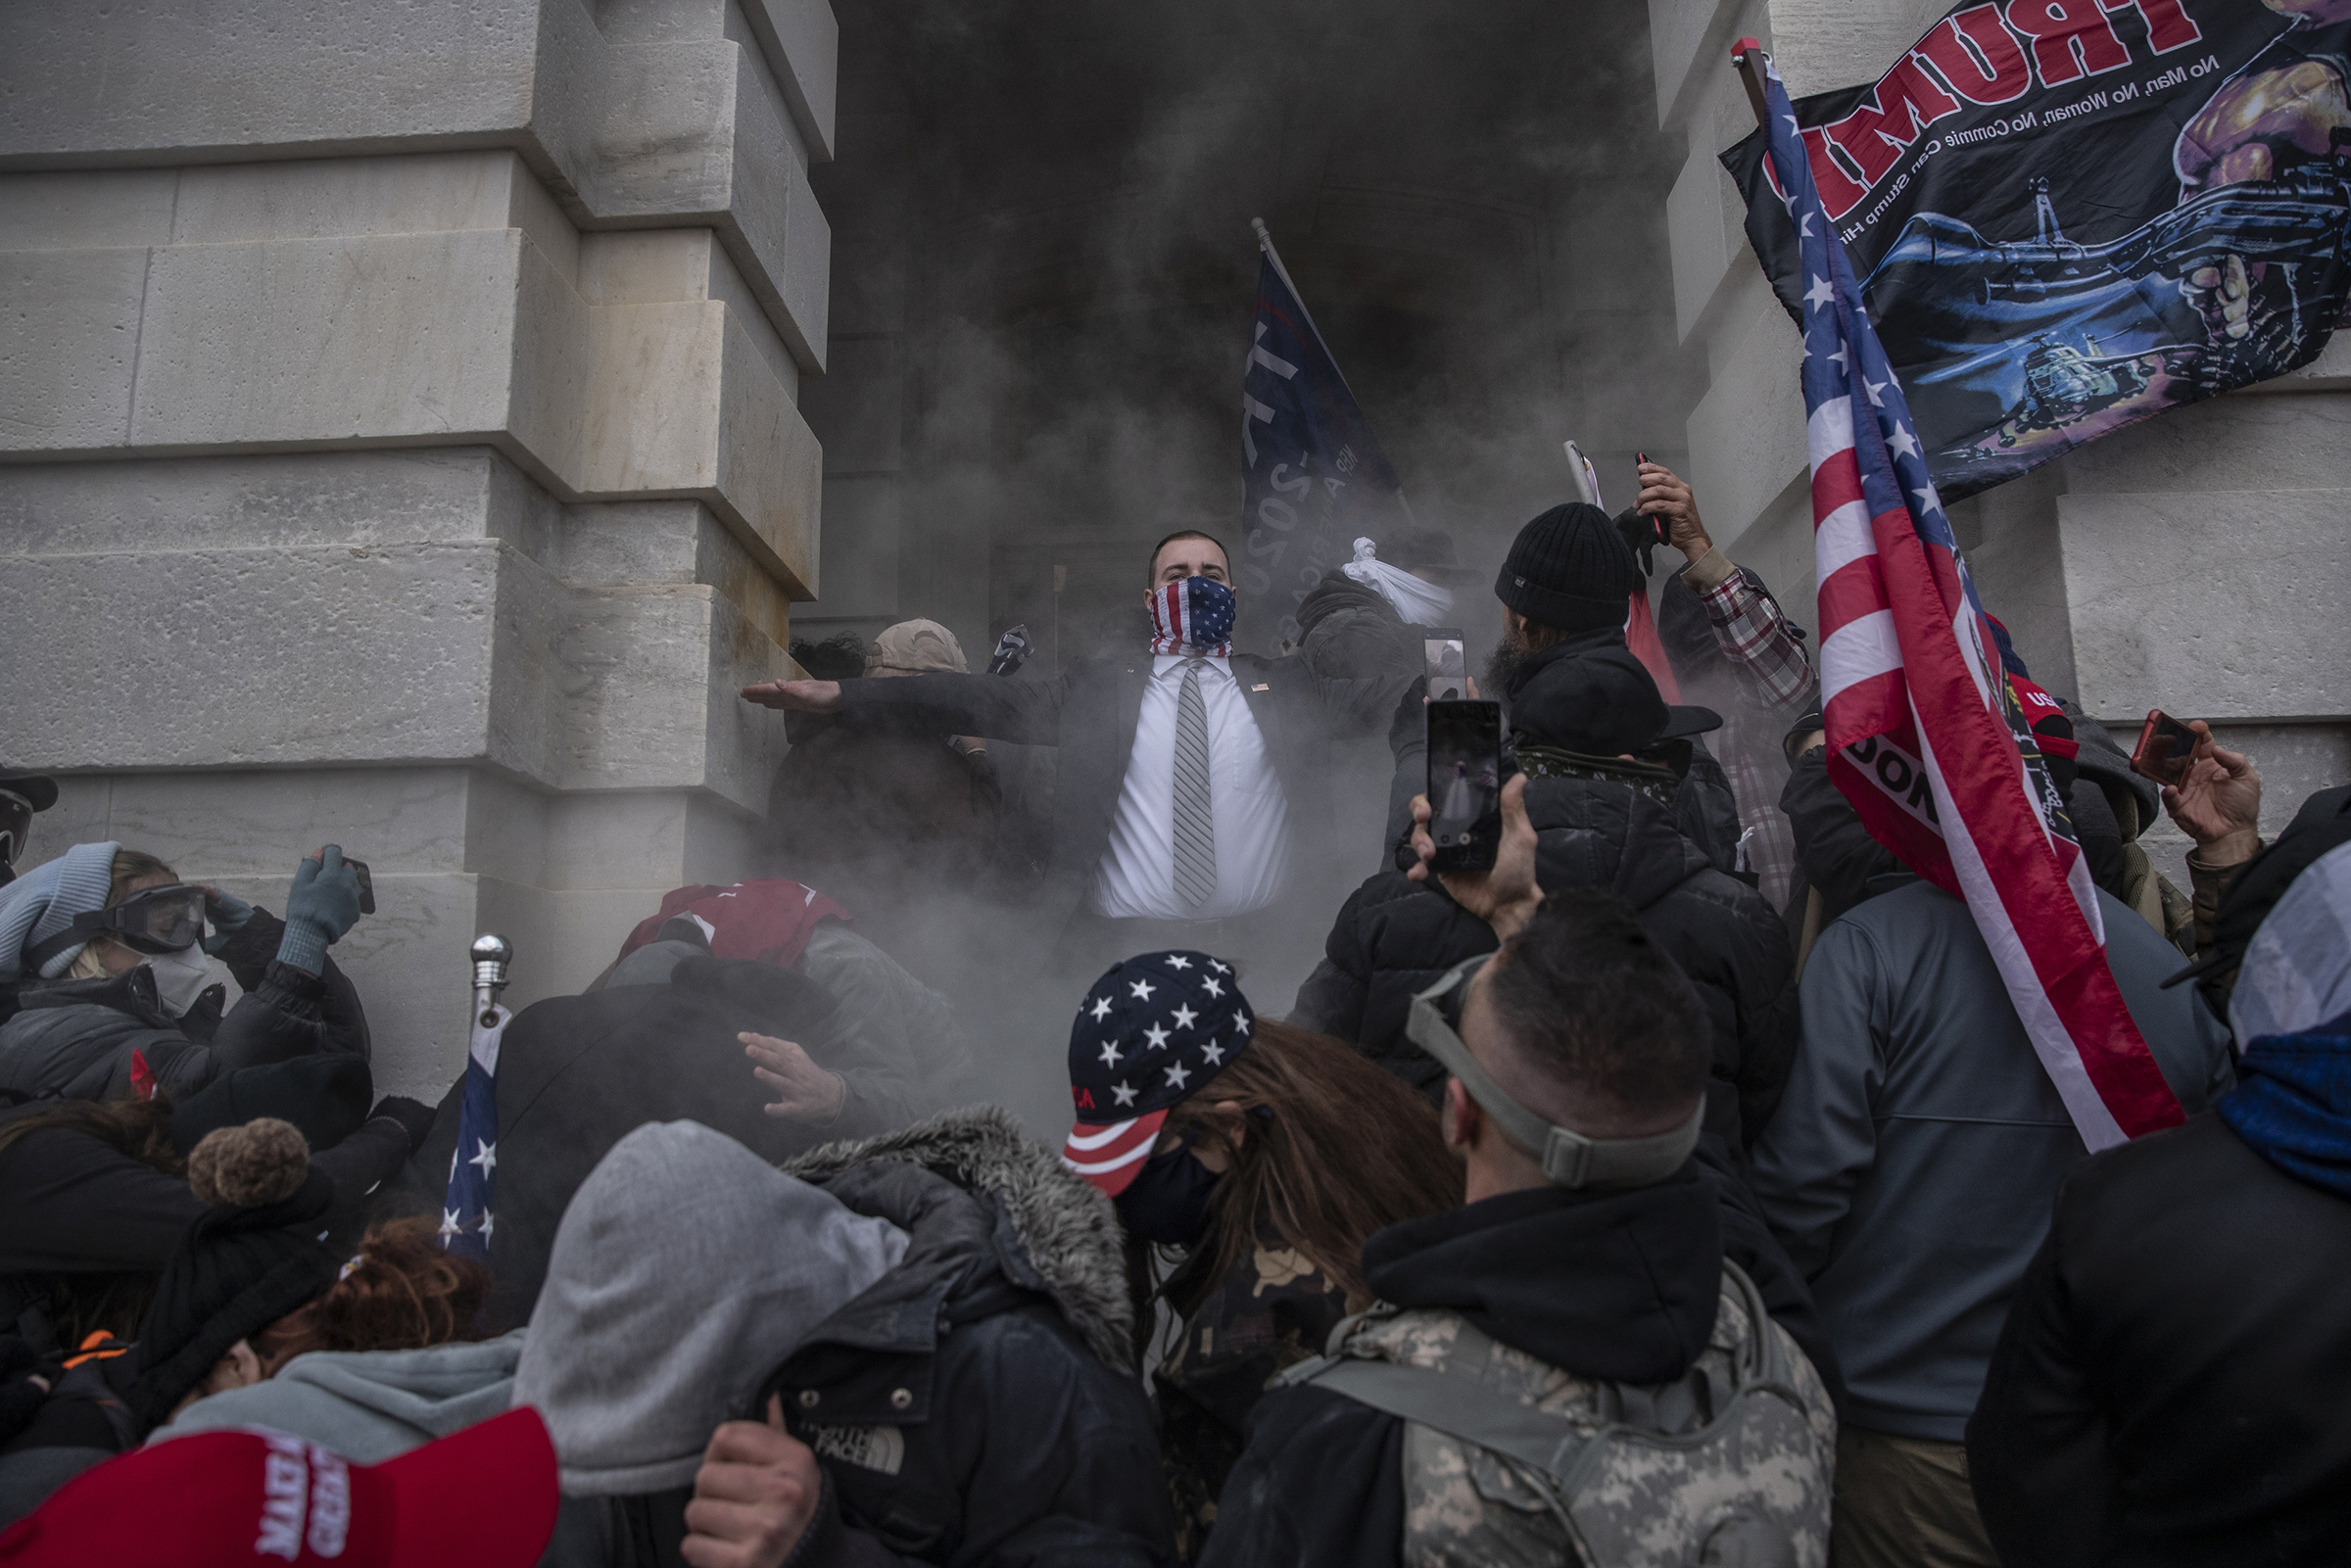 Demonstrators attempt to breach the U.S. Capitol after they stormed past barricades on Jan. 6